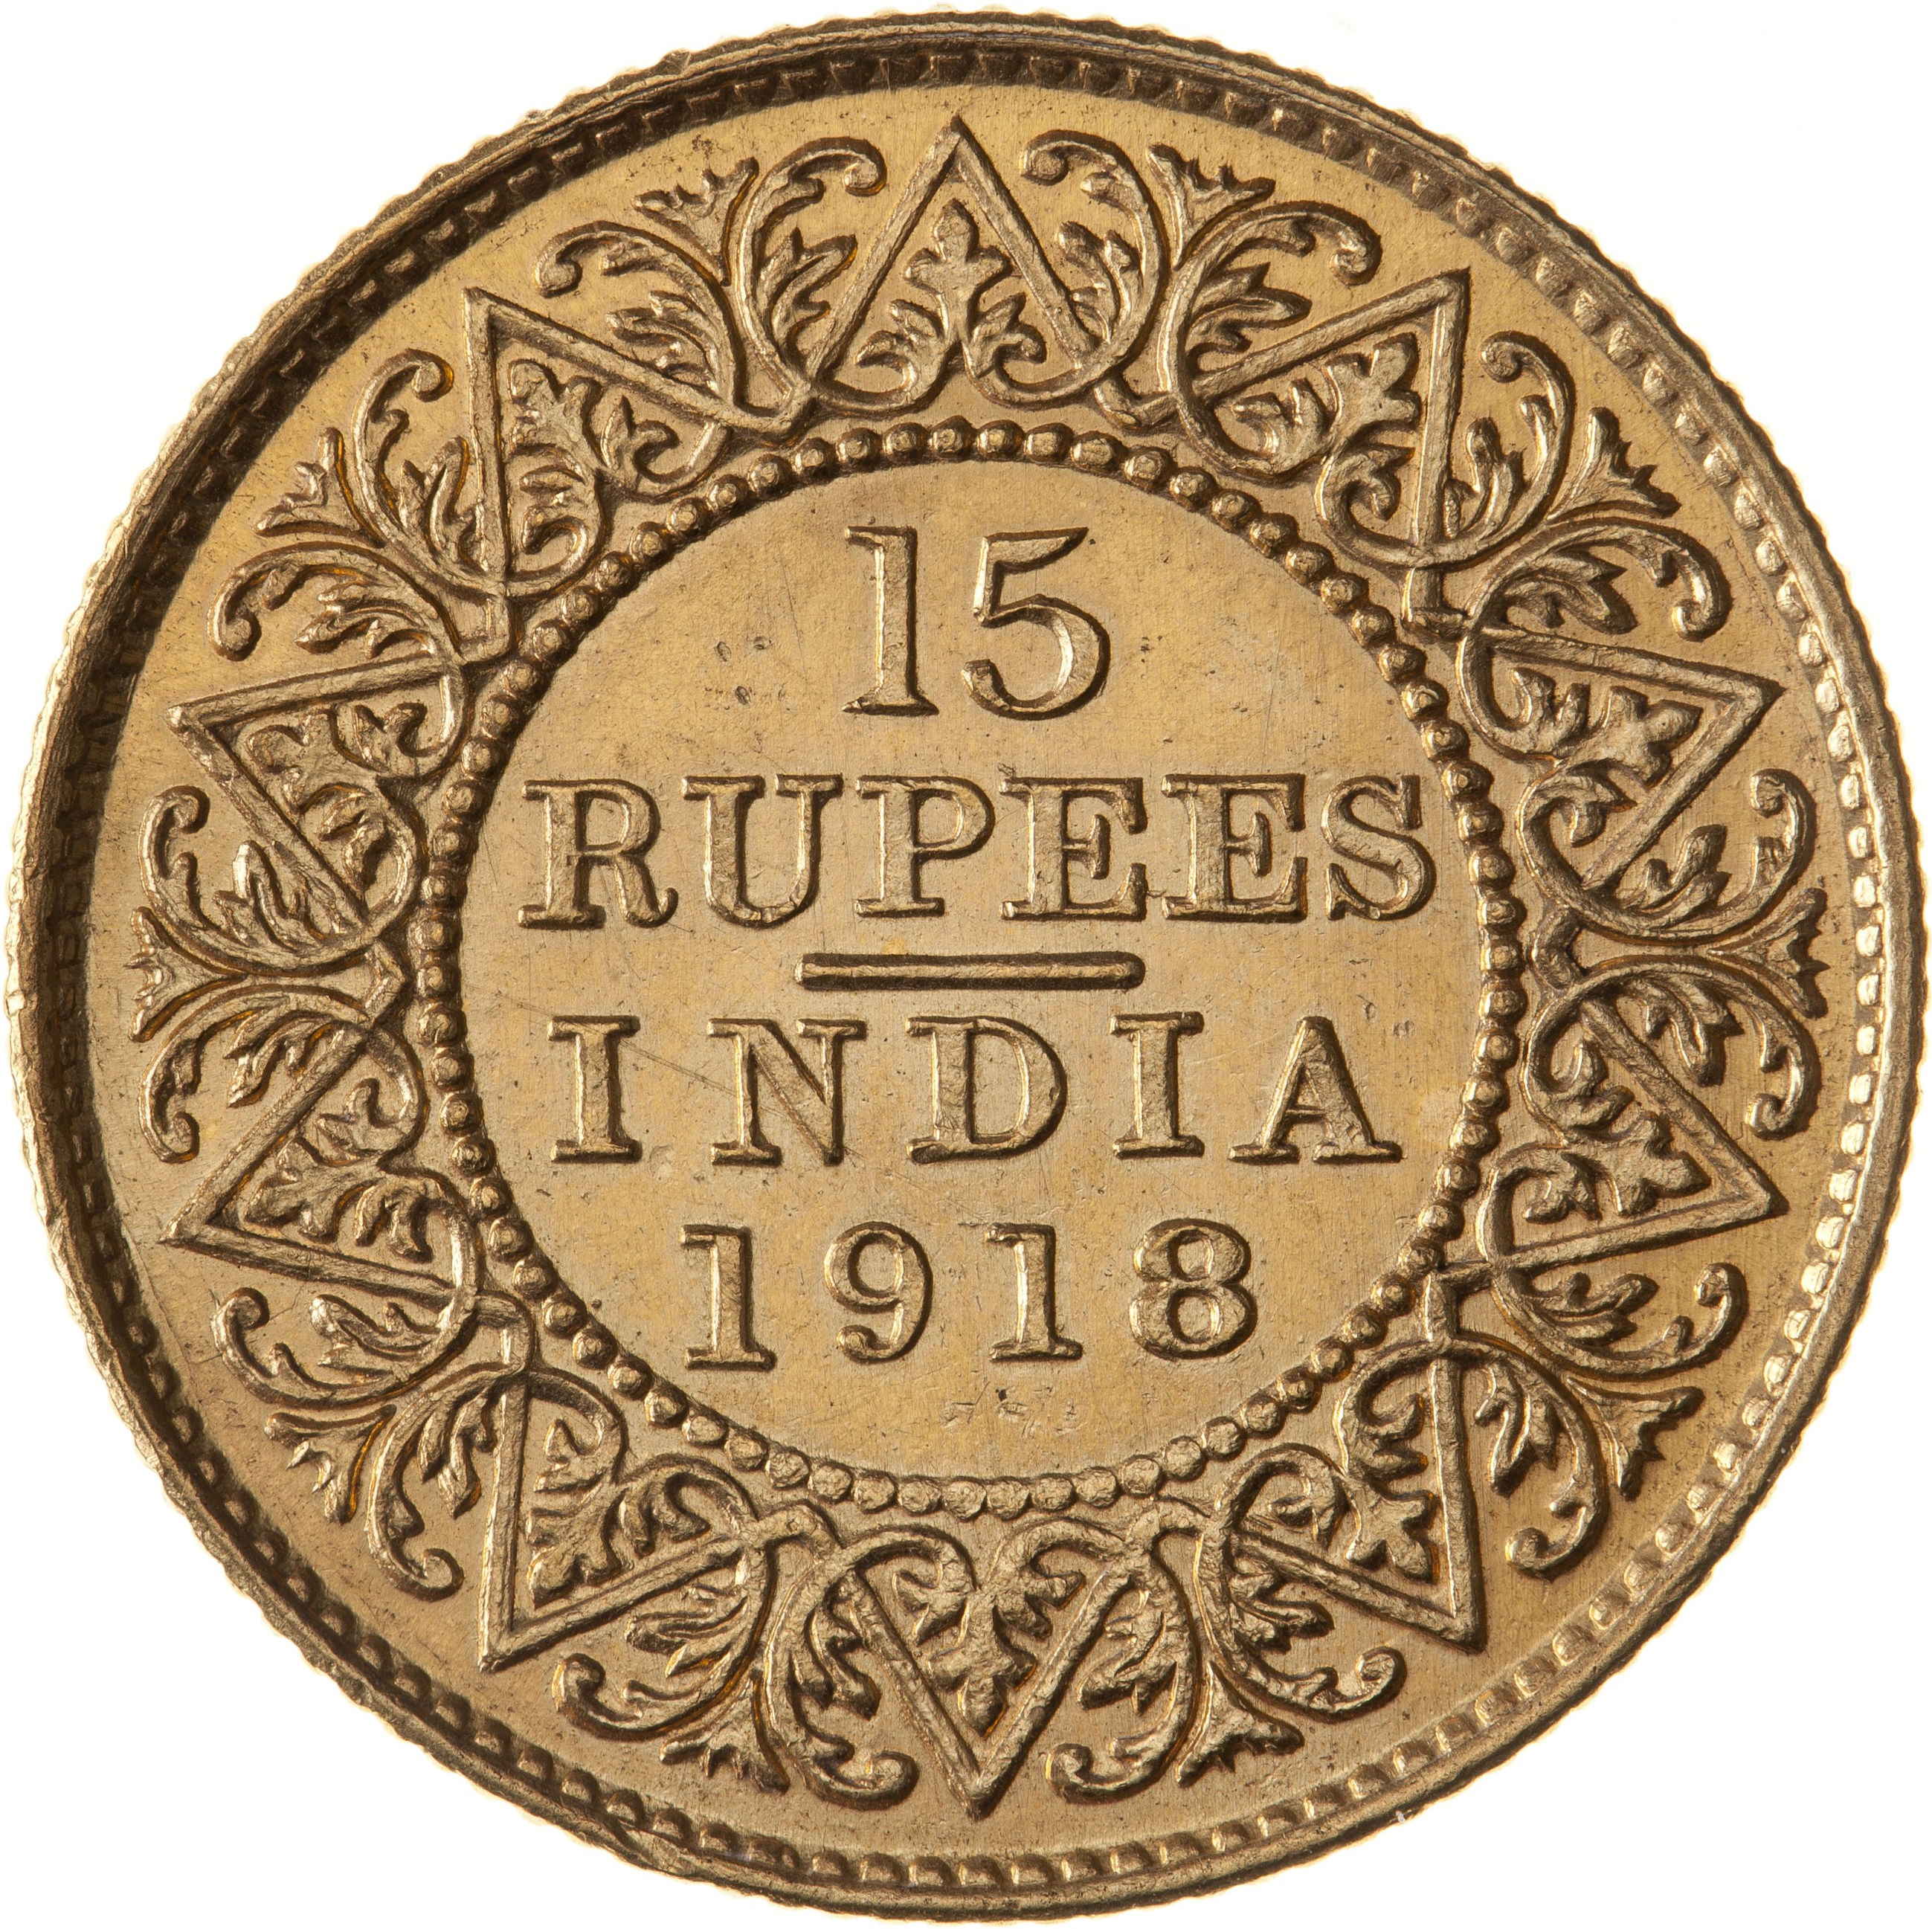 1918 15 rupees reverse